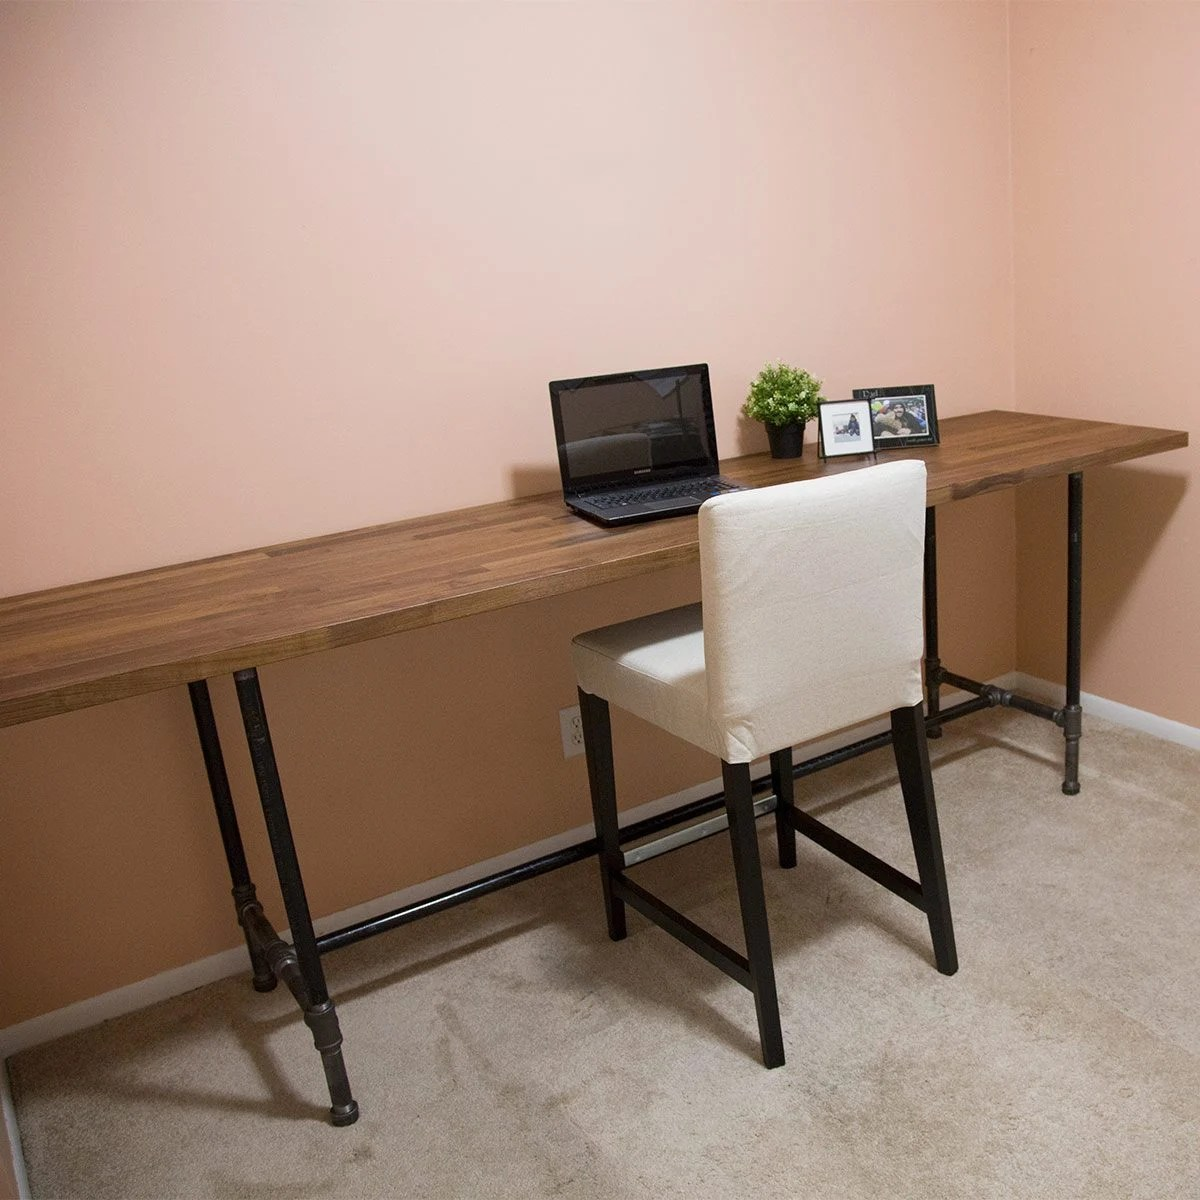 How to Build a Pipe Desk  The Family Handyman